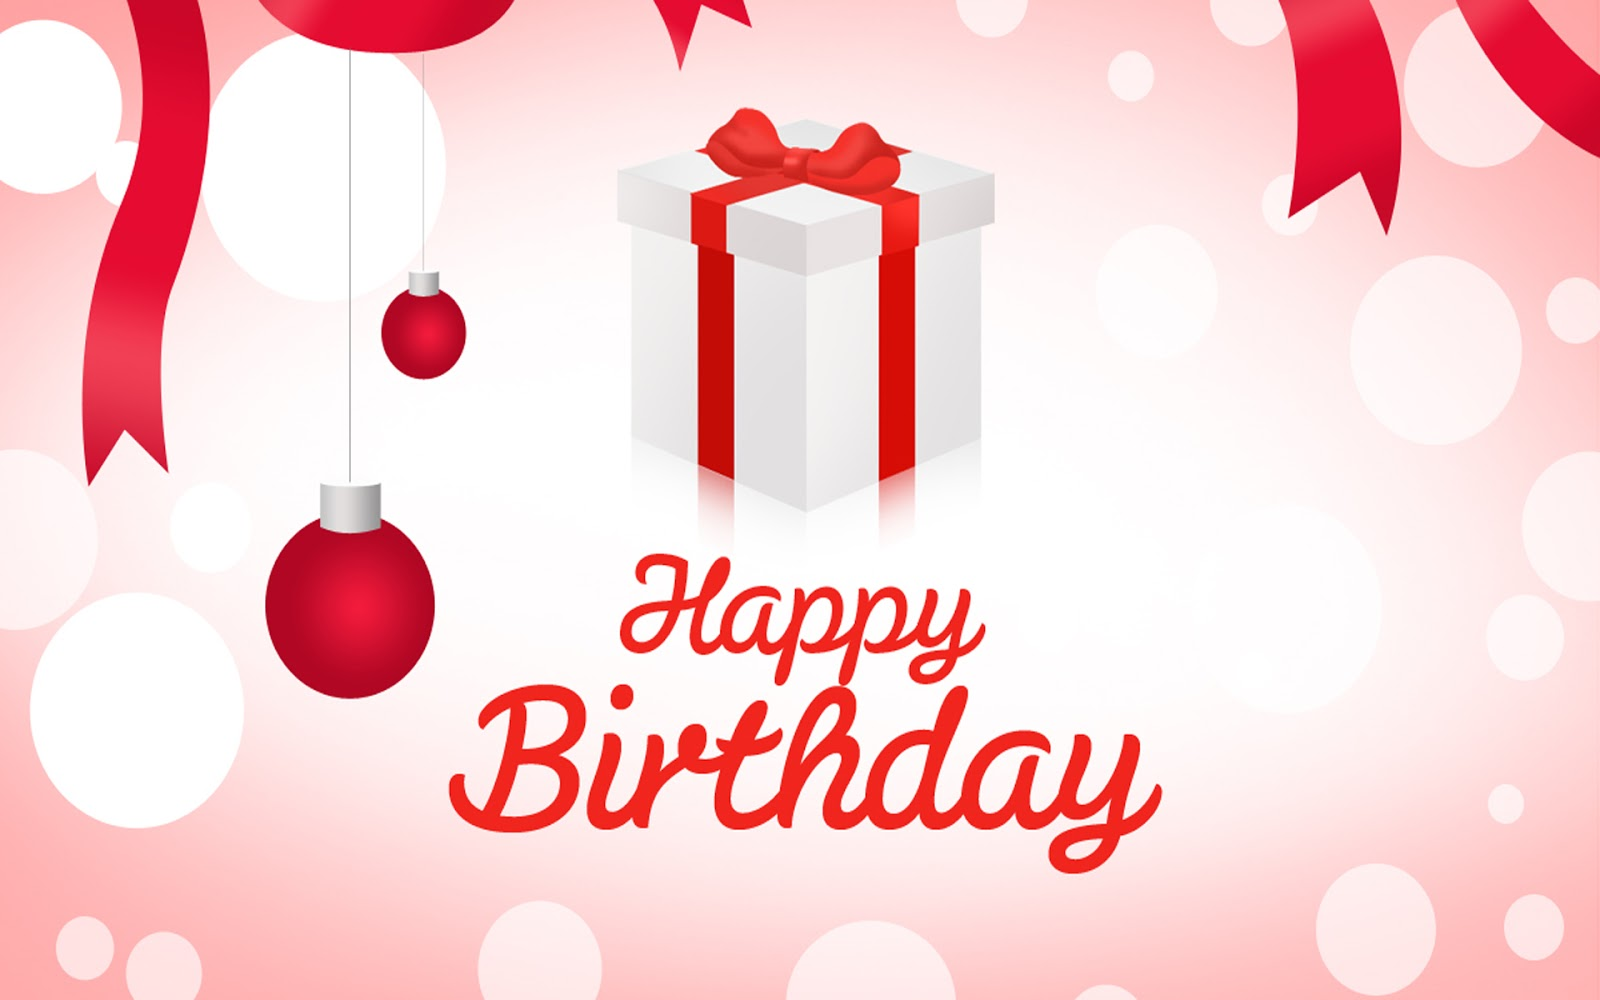 birthday wishes stickers free download ; cute-happy-birthday-wishes-for-son-from-father-and-mother%252B%2525288%252529